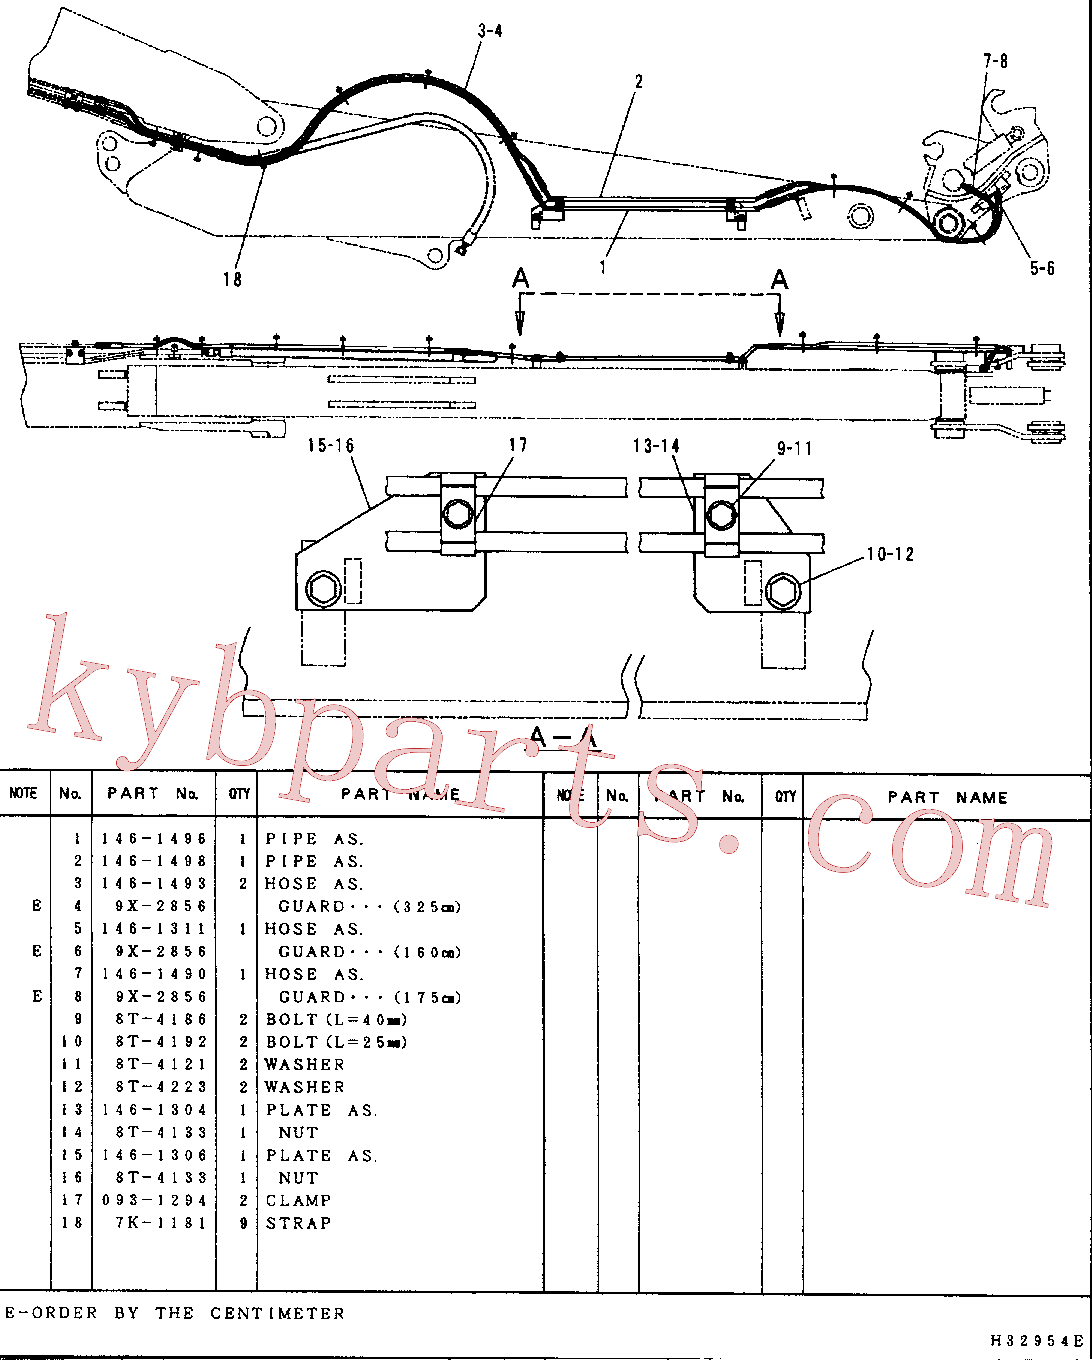 CAT 146-1311 for 312B L Excavator(EXC) hydraulic system 146-1478 Assembly